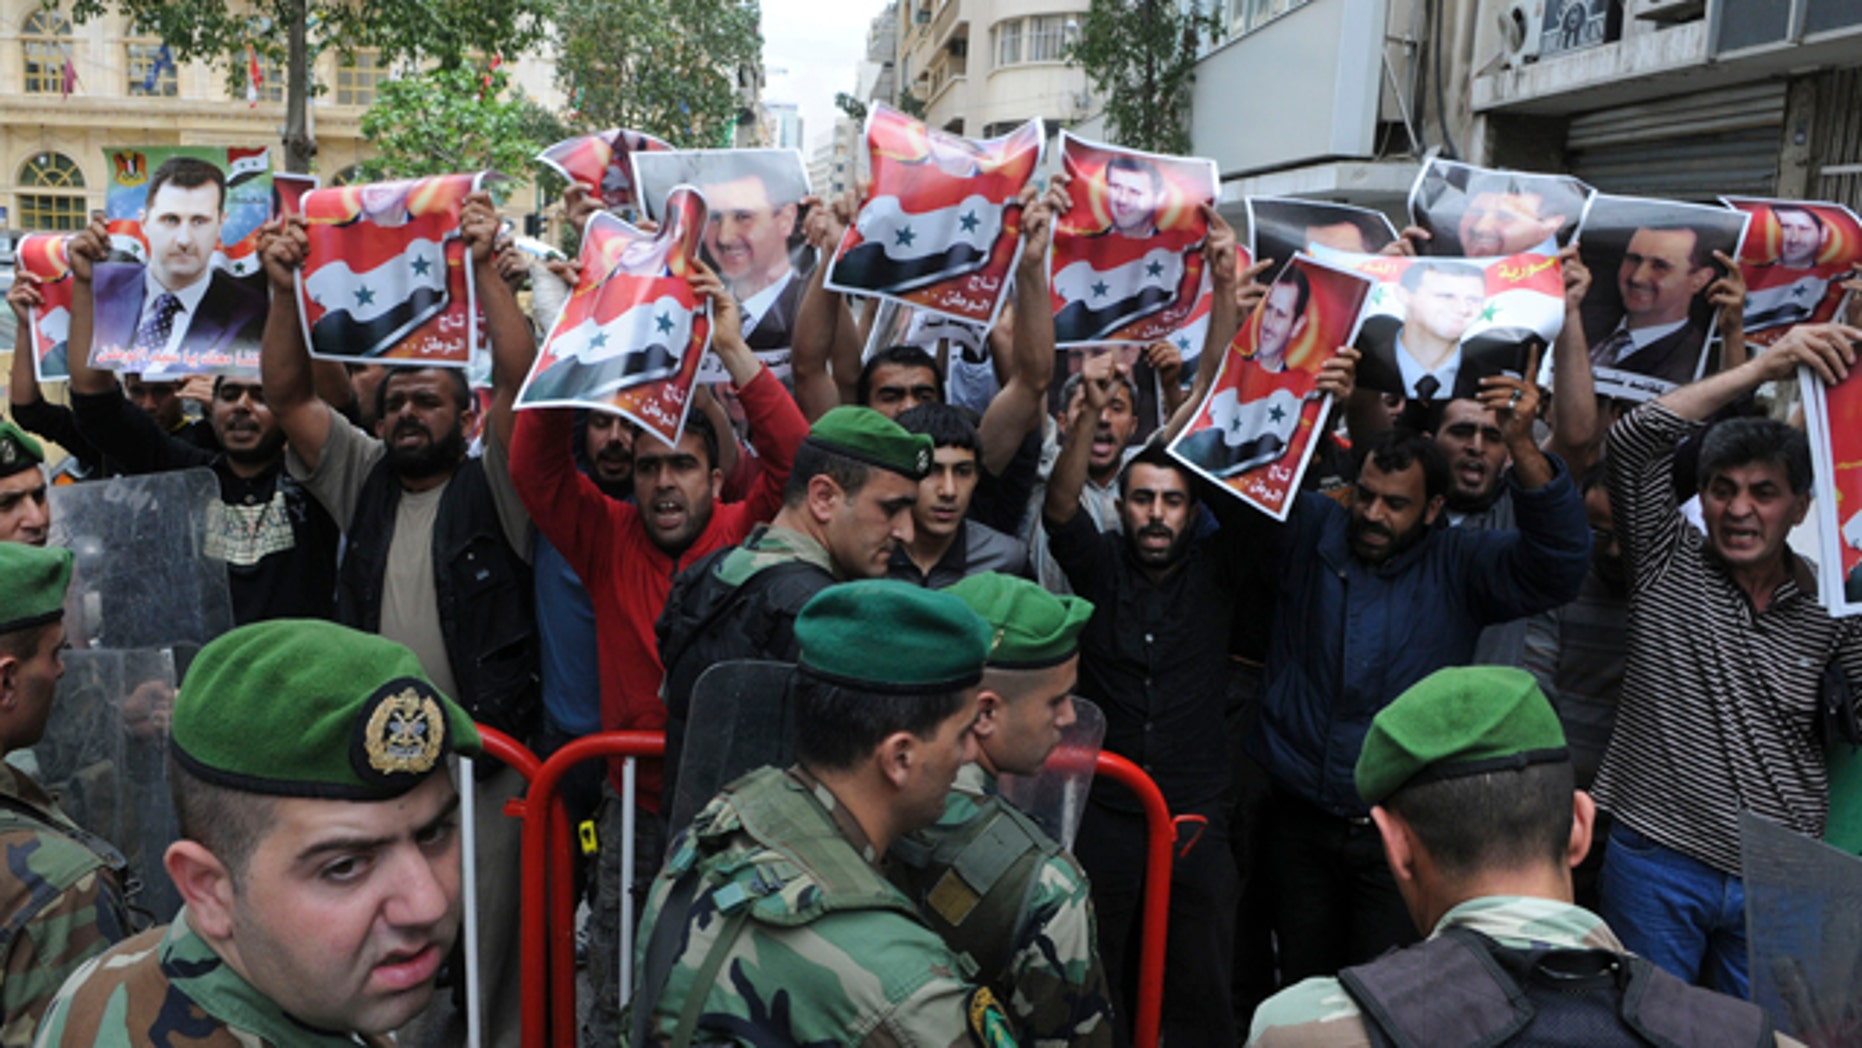 """April 29: Lebanese soldiers stand guard as Syrian protesters carry pictures of Syrian President Bashar Assad and shout pro-government slogans in front of the Syrian embassy in Beirut, Lebanon. The banned Muslim Brotherhood urged Syrians to take to the streets on Friday as activists called for a """"Day of Rage"""" against Assad's regime, which has stepped up its deadly crackdown on protesters by unleashing the army along with snipers and tanks. The Arabic on Assad's picture reads:"""" The crown of the nation."""" (AP)"""